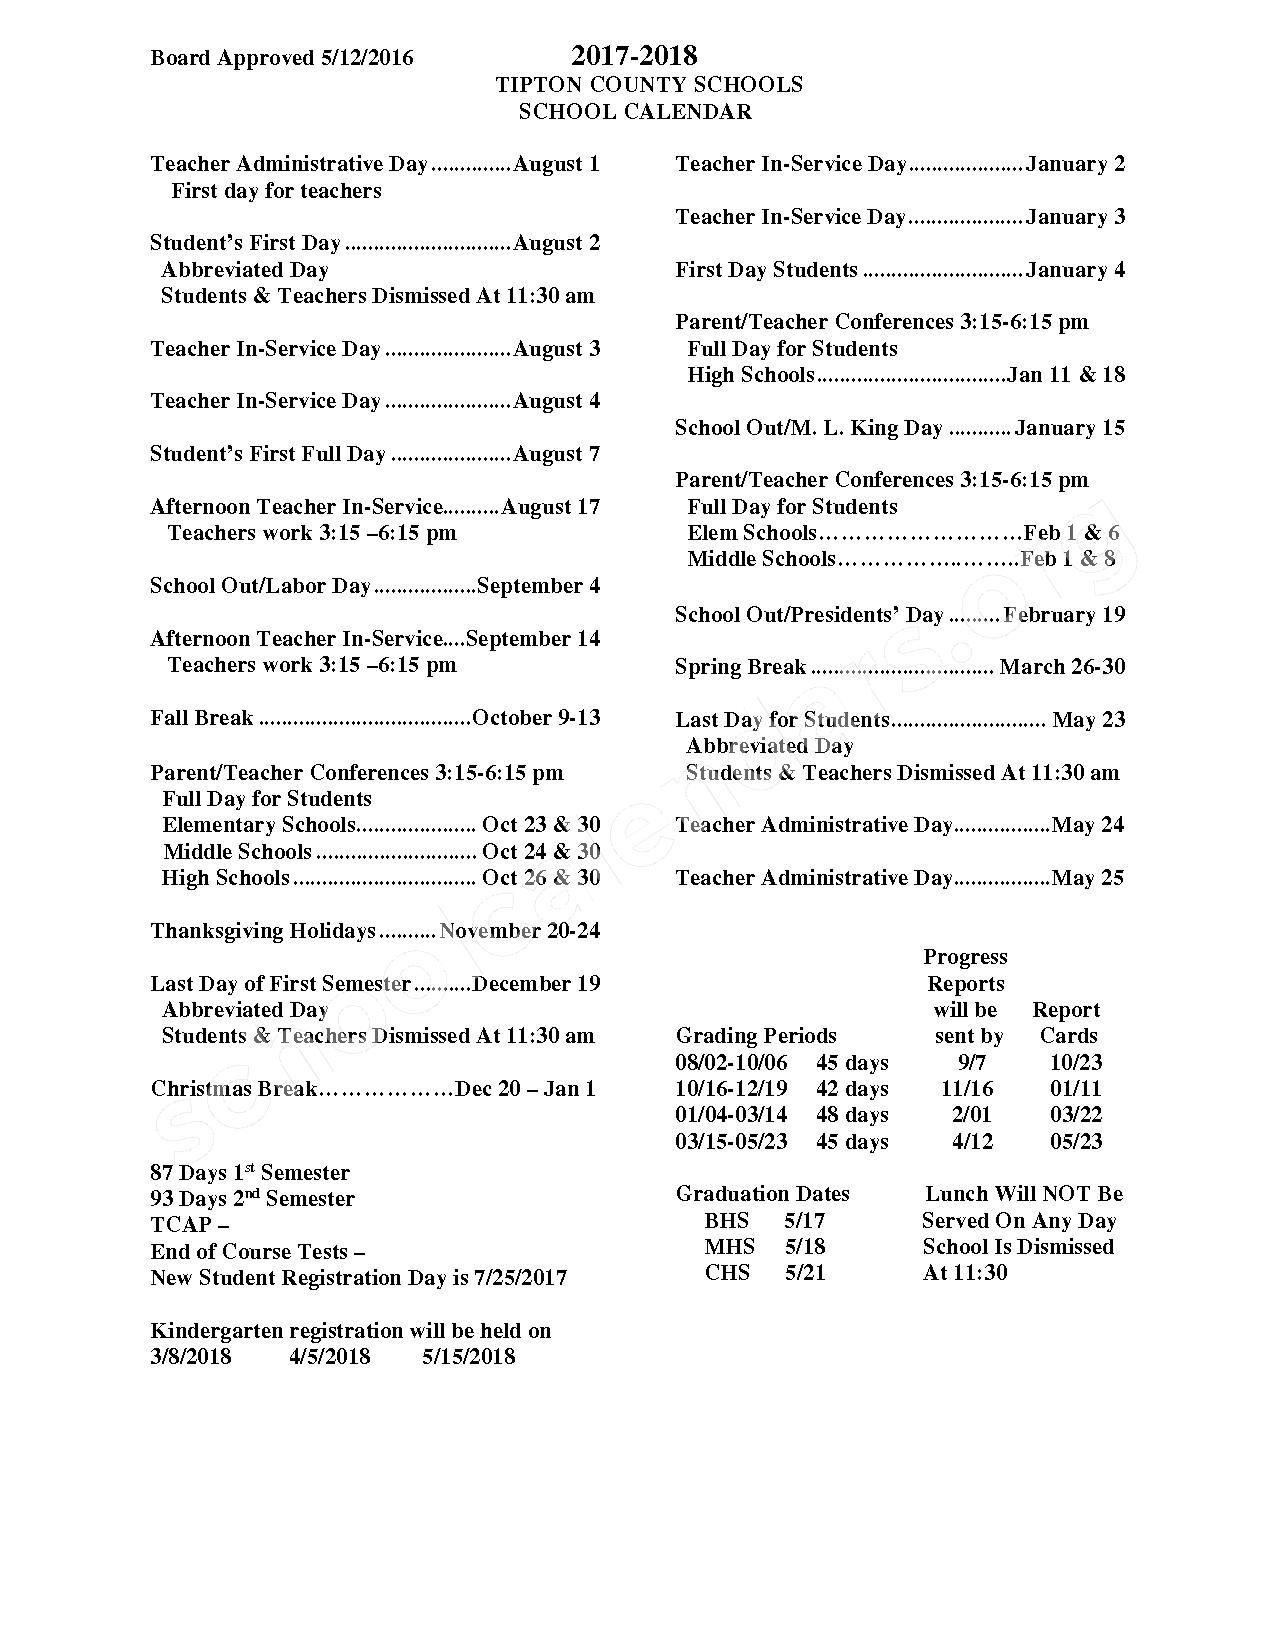 2017 - 2018 School Year – Tipton County Schools – page 1